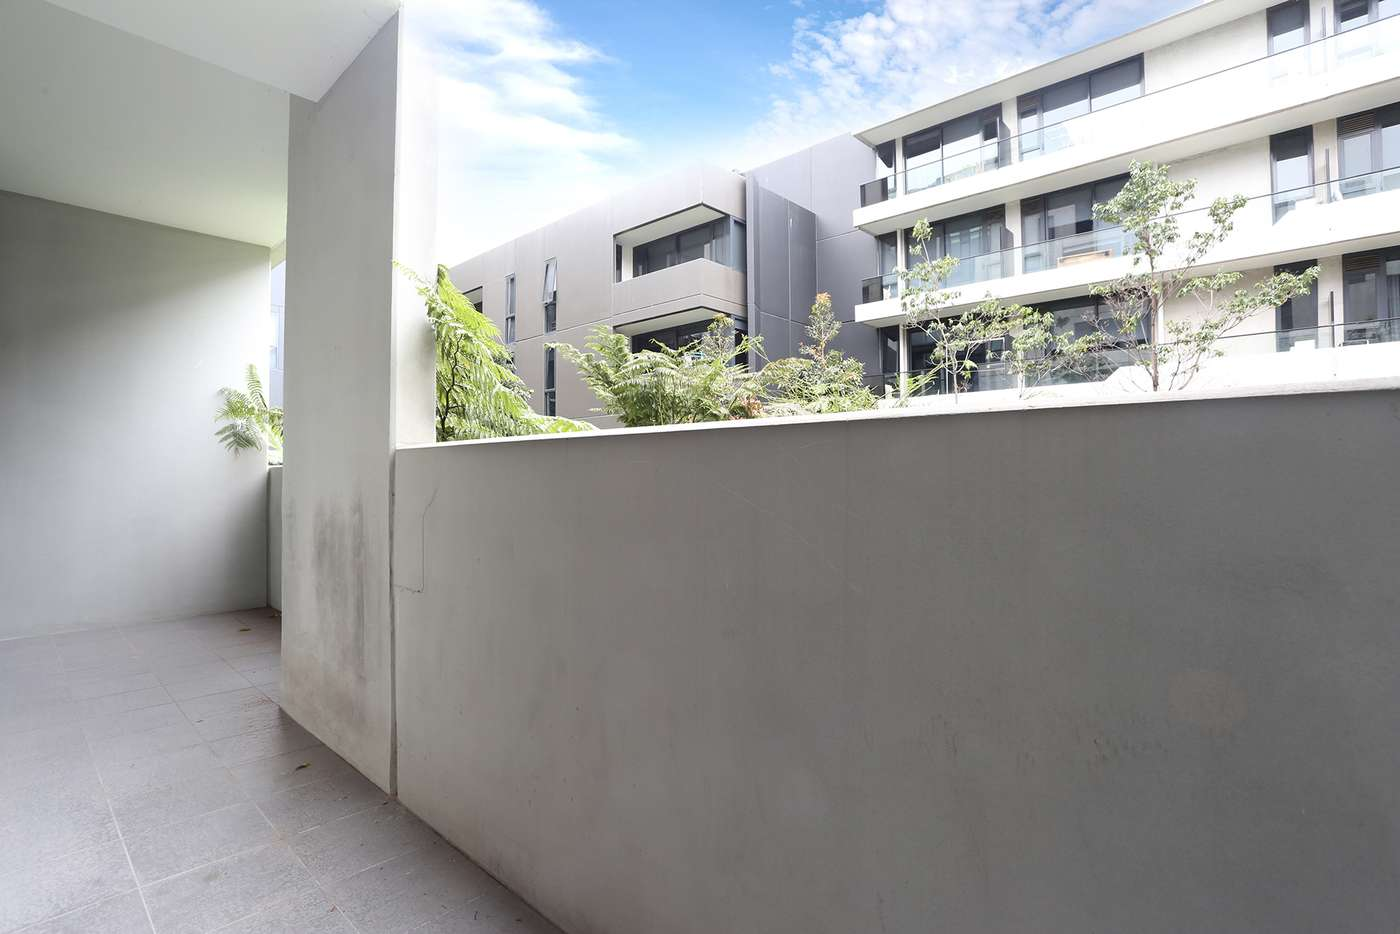 Seventh view of Homely apartment listing, 215B/1-19 Colombo Street, Mitcham VIC 3132